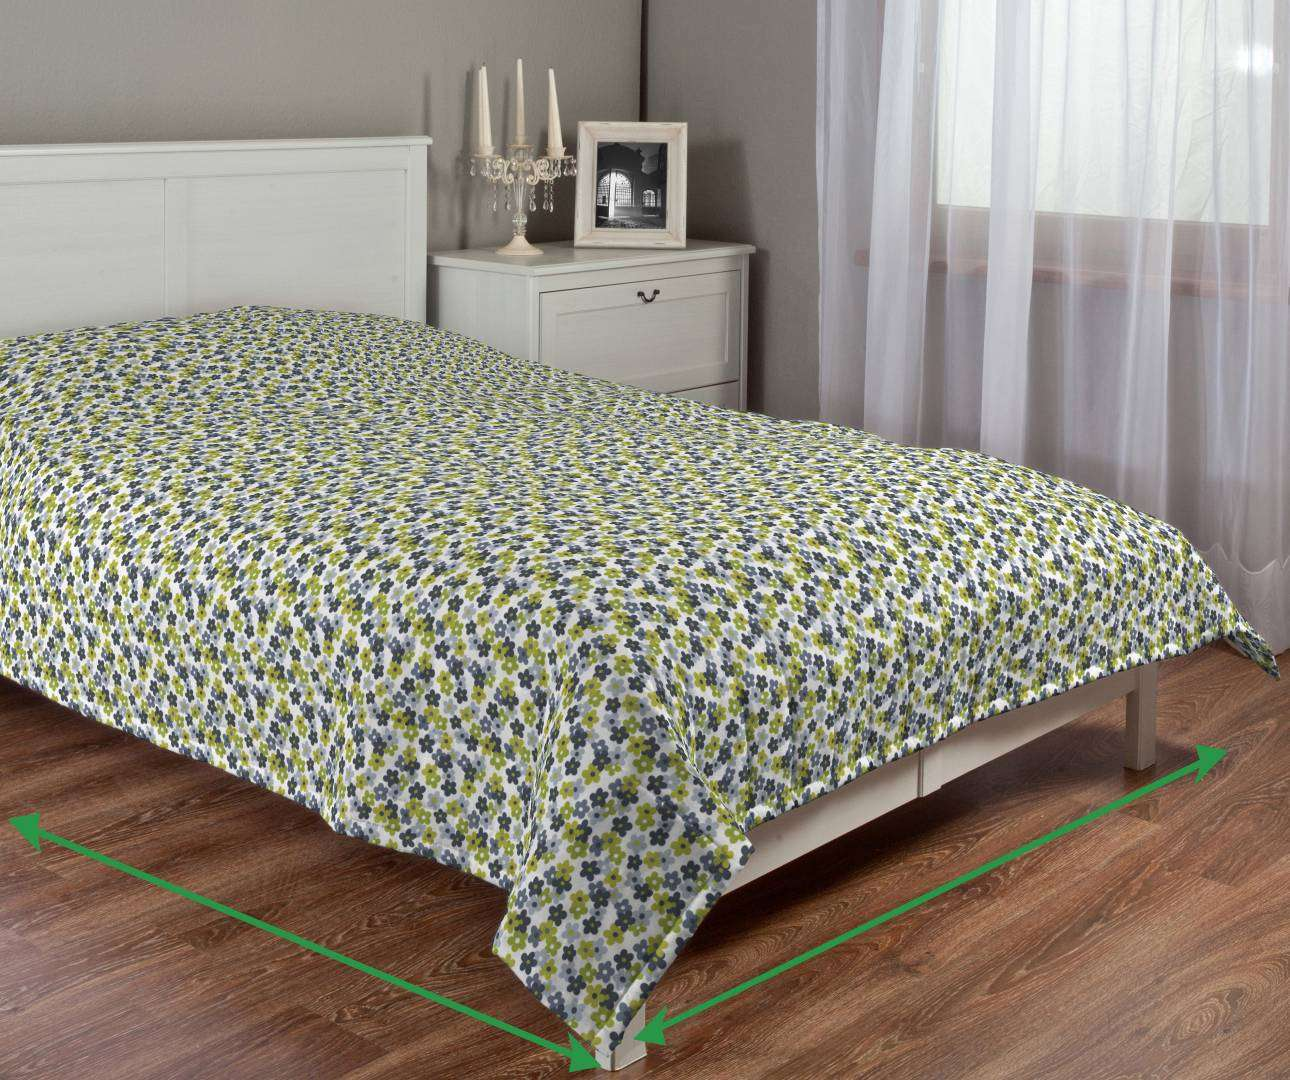 Quilted throw (vertical quilt pattern) in collection Fleur , fabric: 137-56